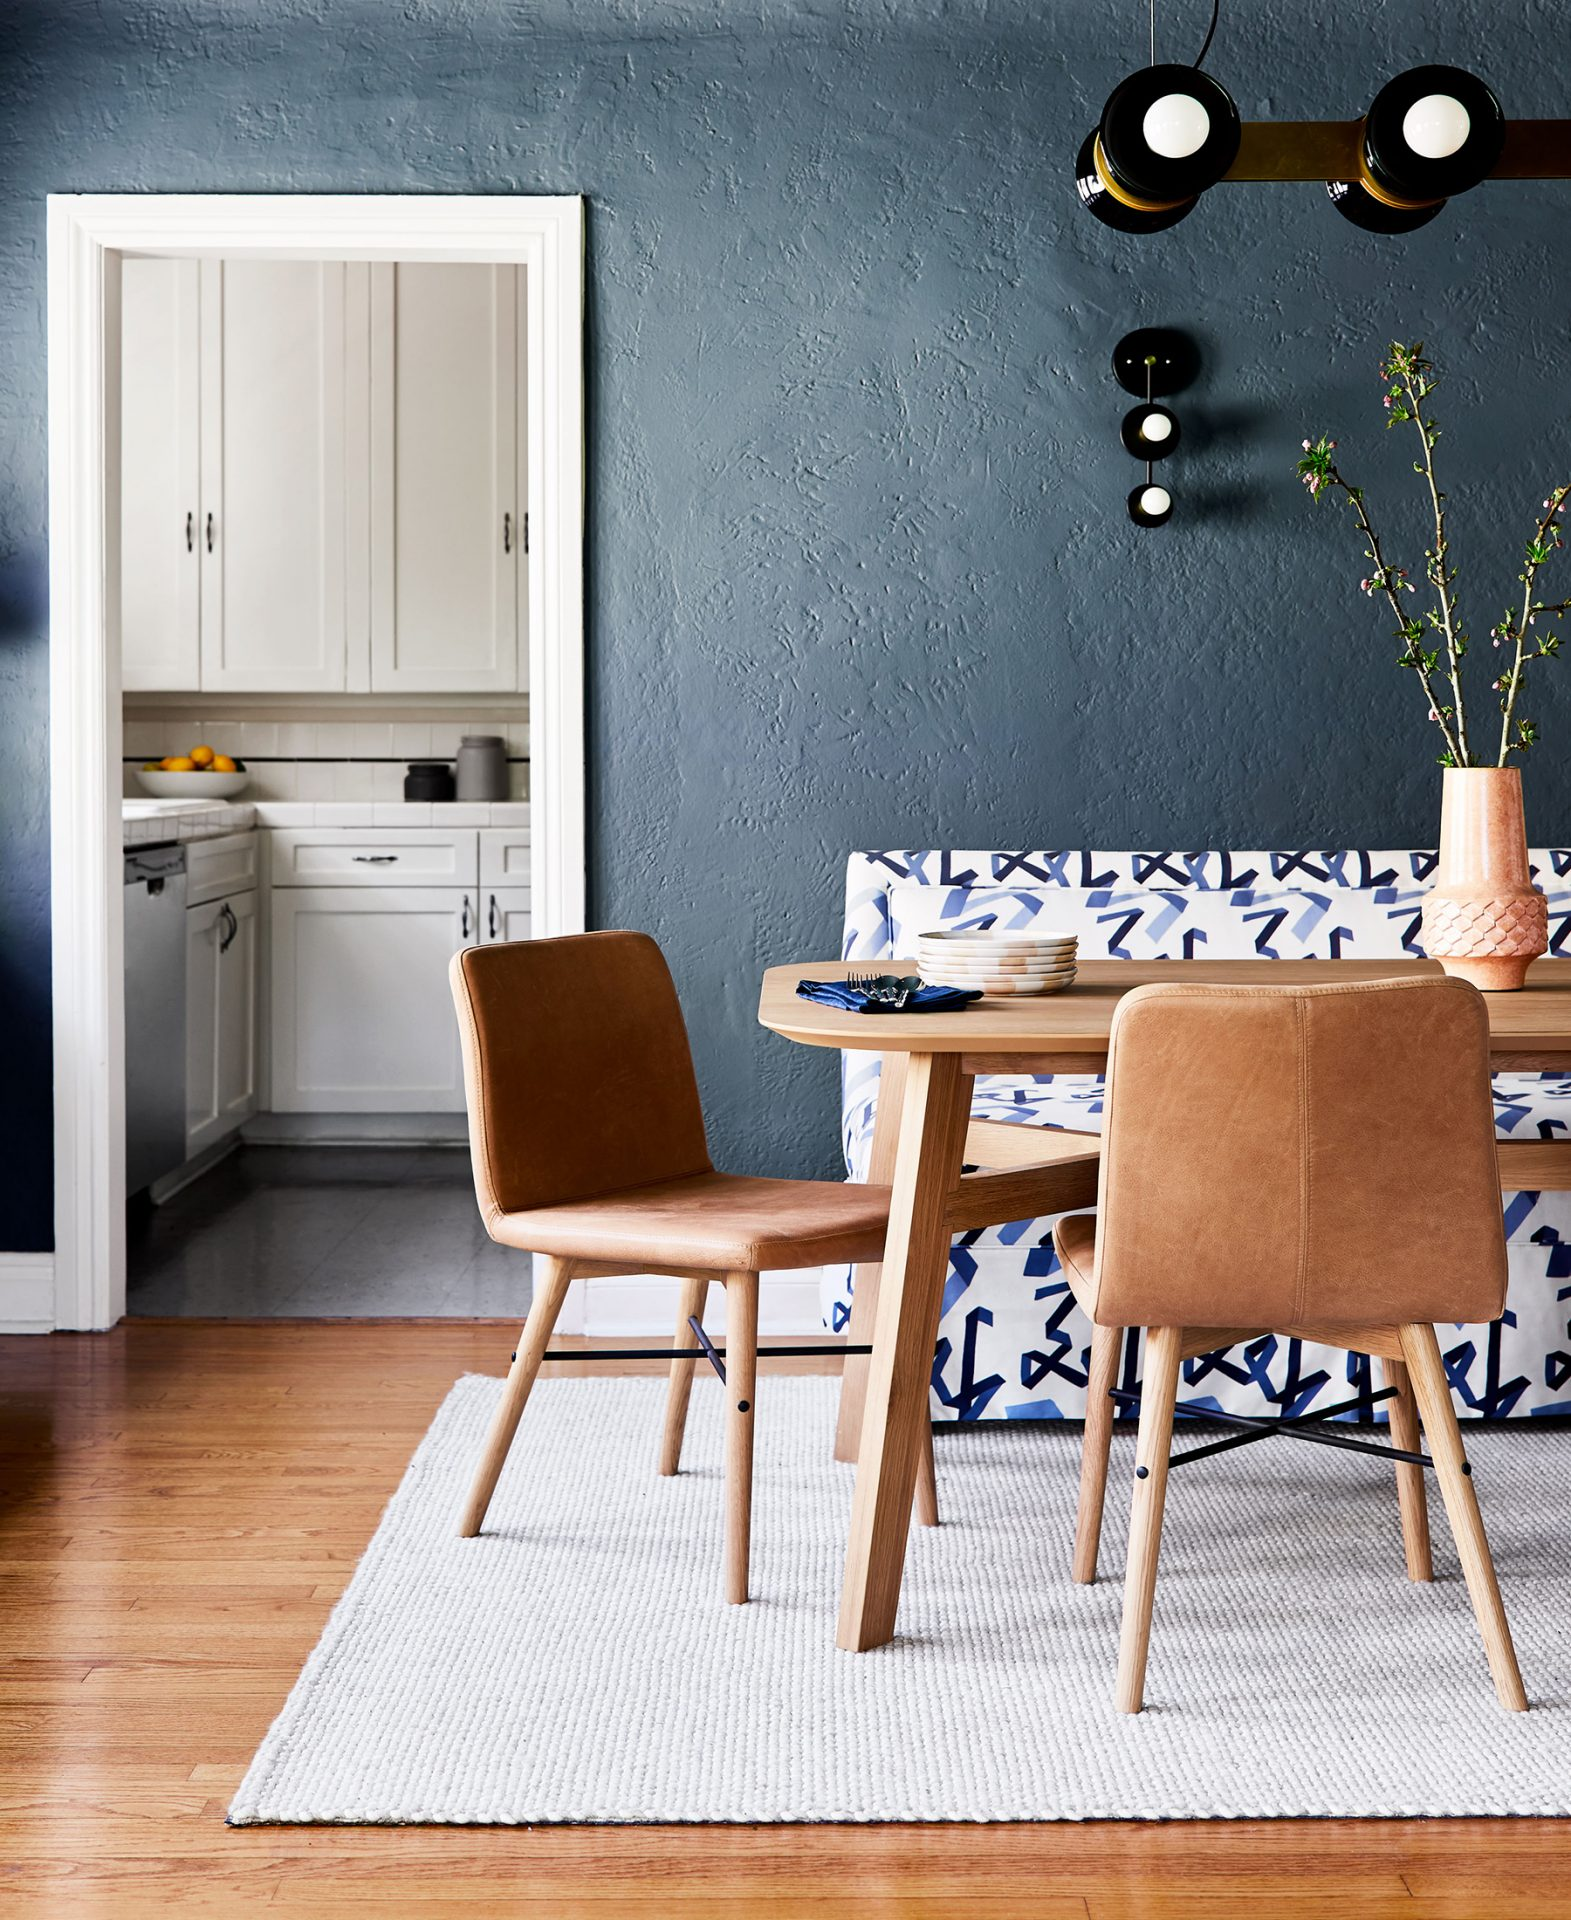 Dining room designed by Emily Henderson featuring the leather Kissa dining chair.